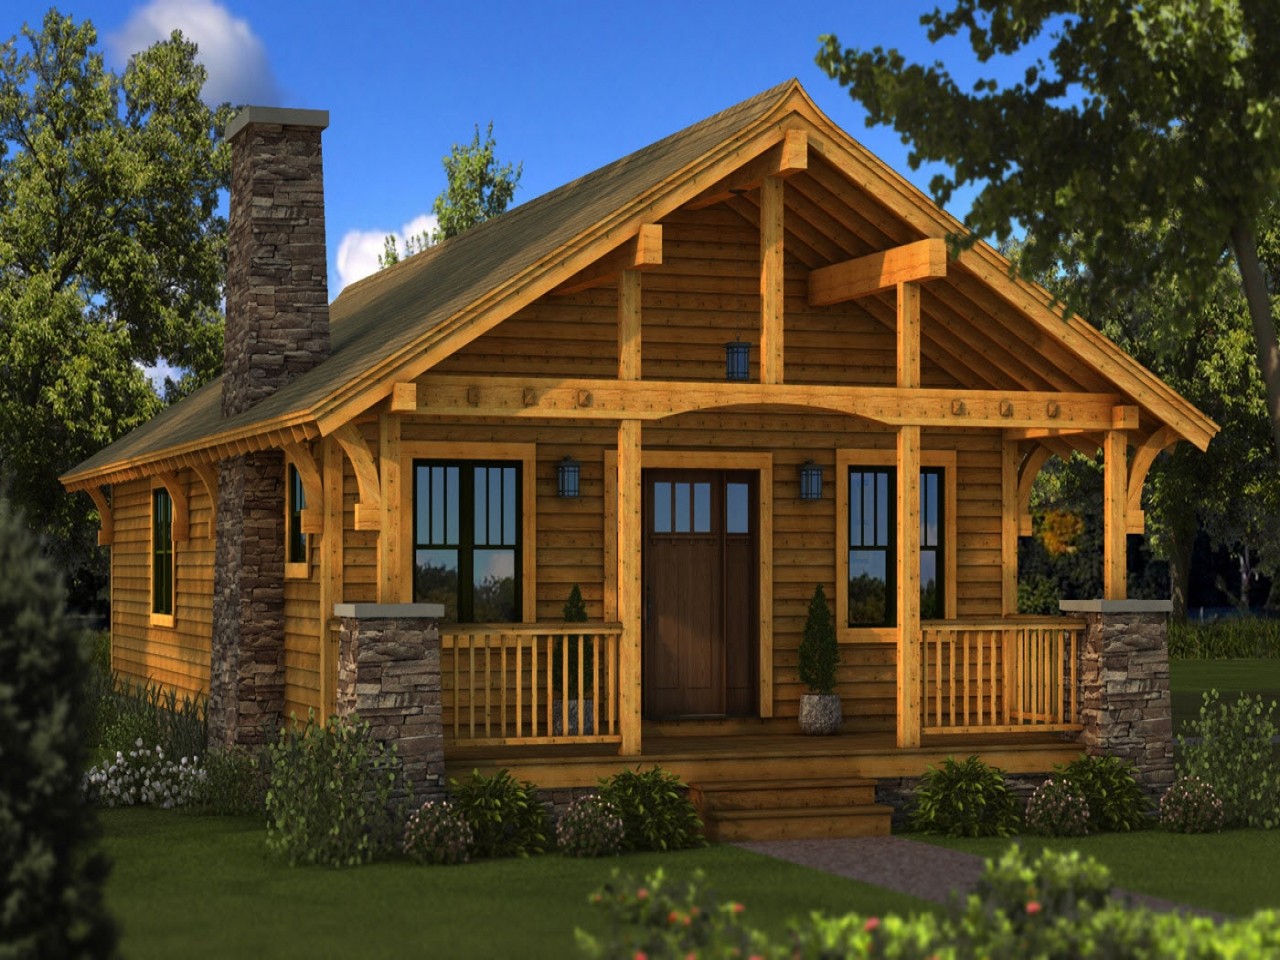 Tiny Log Home Designs: Small Log Cabin Floor Plans Small Log Cabin Homes Plans